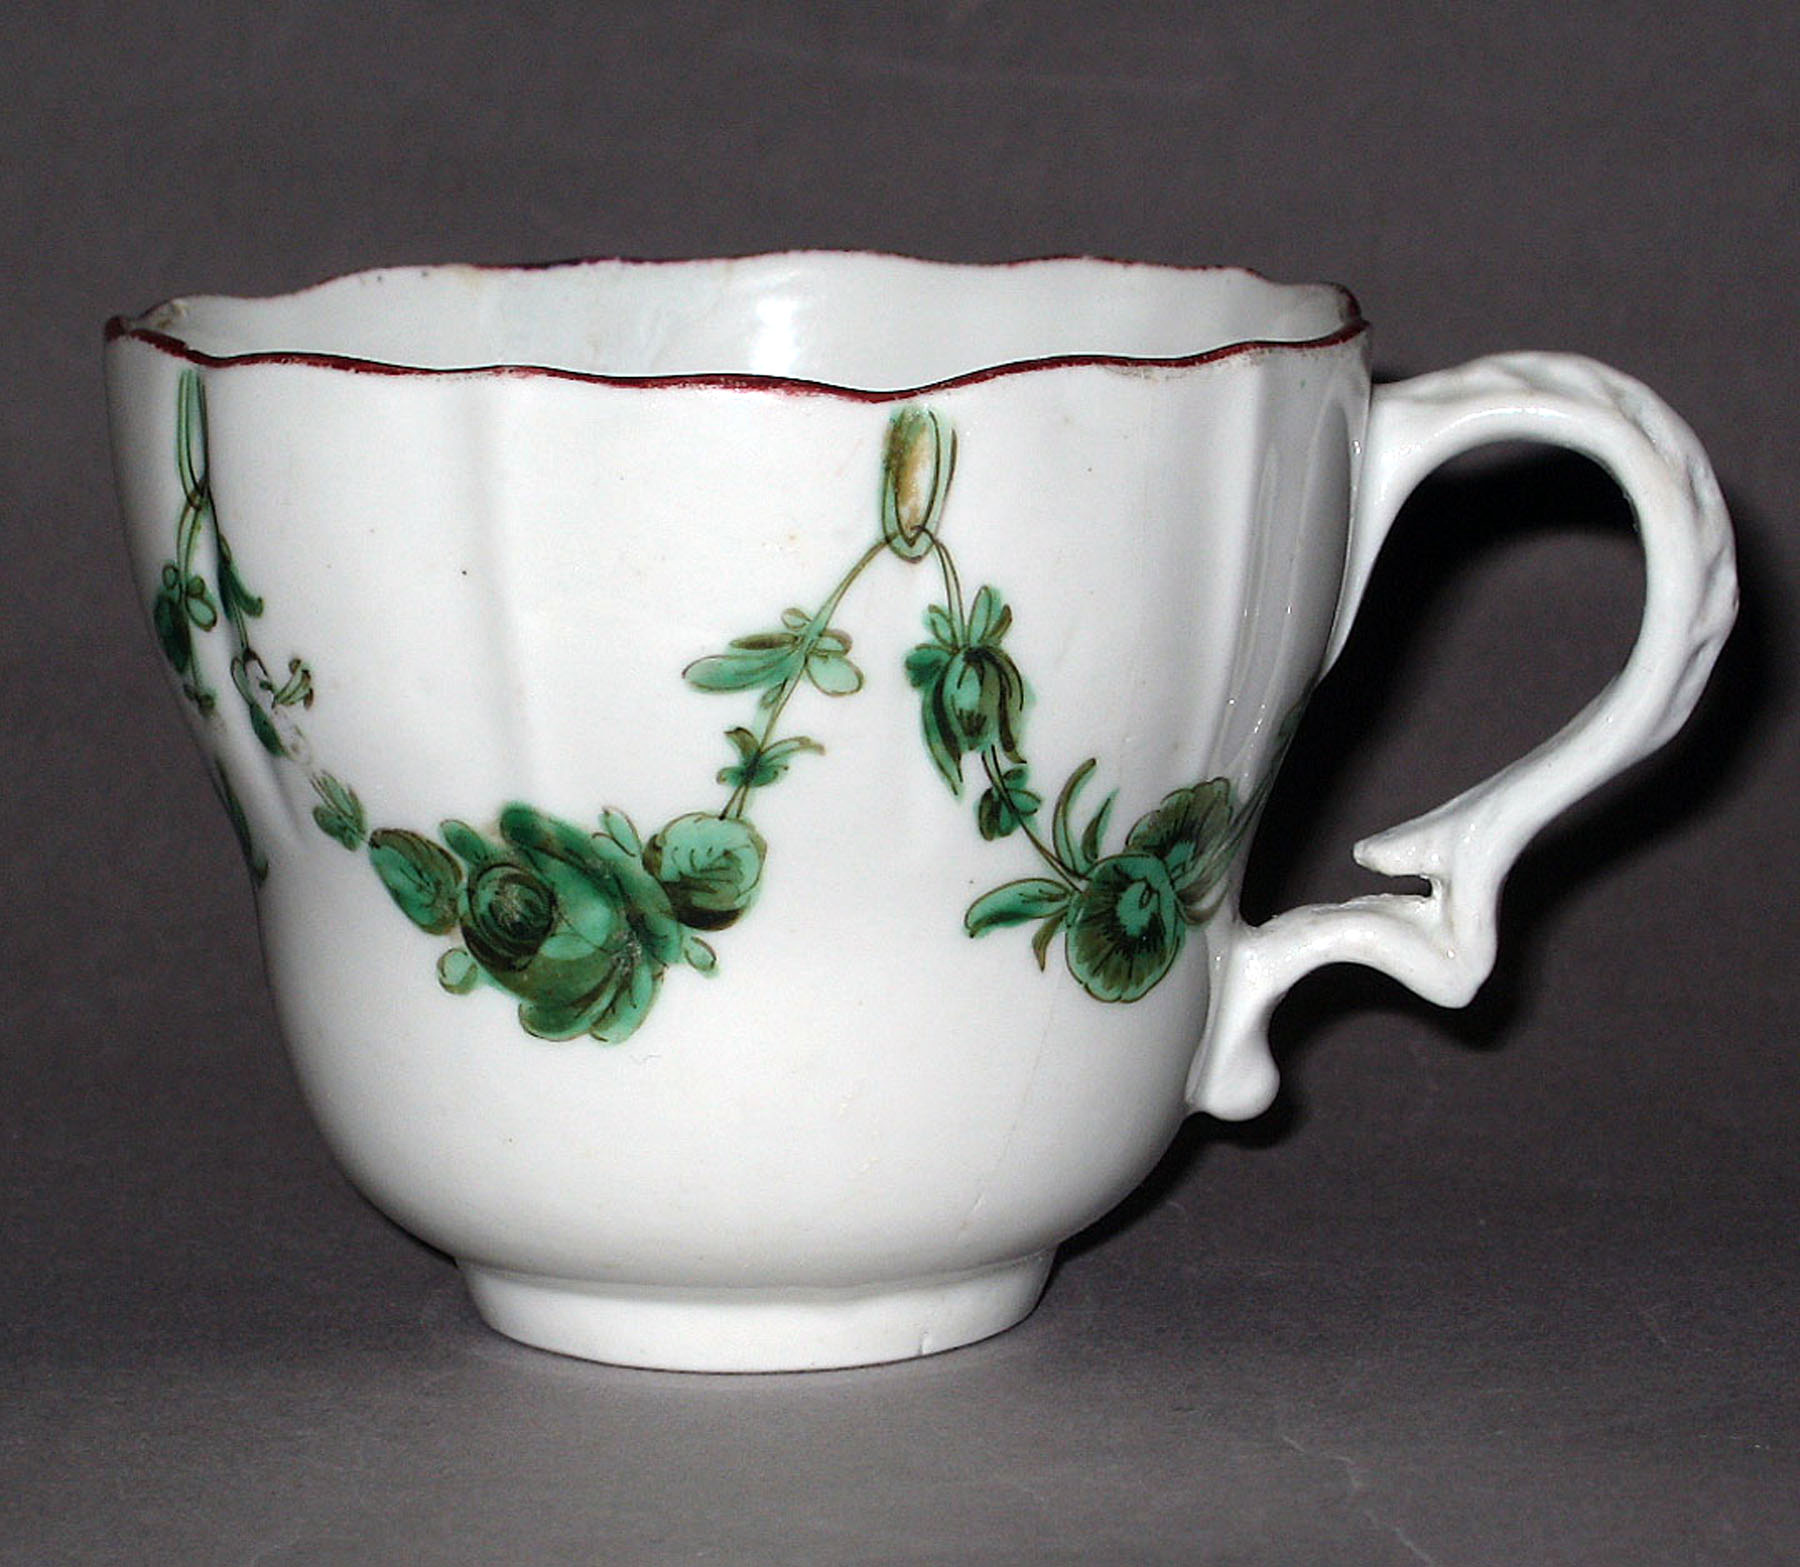 1953.0159.001 Bristol hard-paste porcelain coffee cup